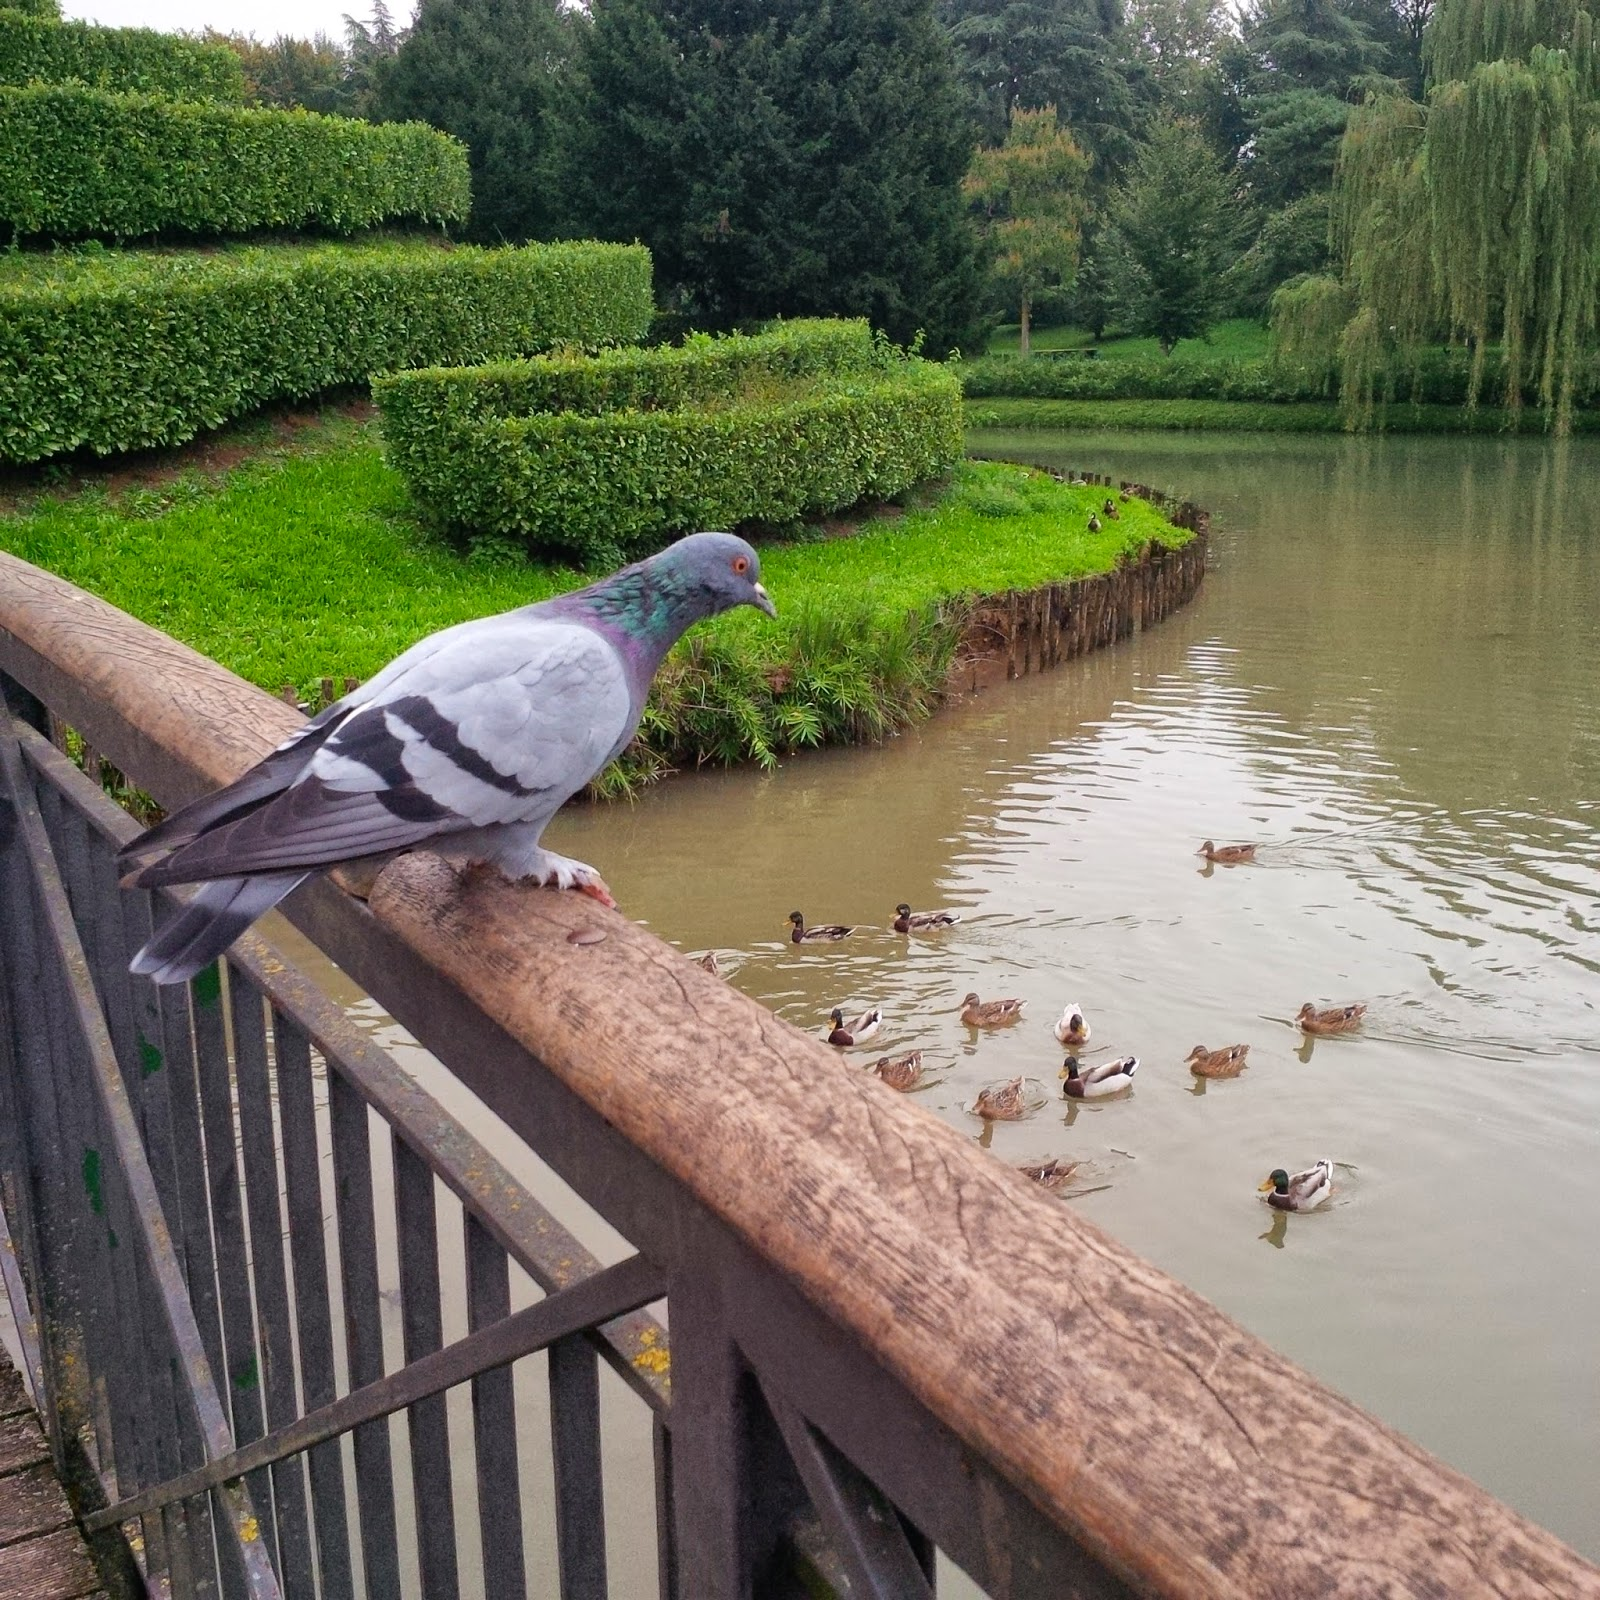 A pigeon peeking at the ducks in the pond in Parco Querini in Vicenza